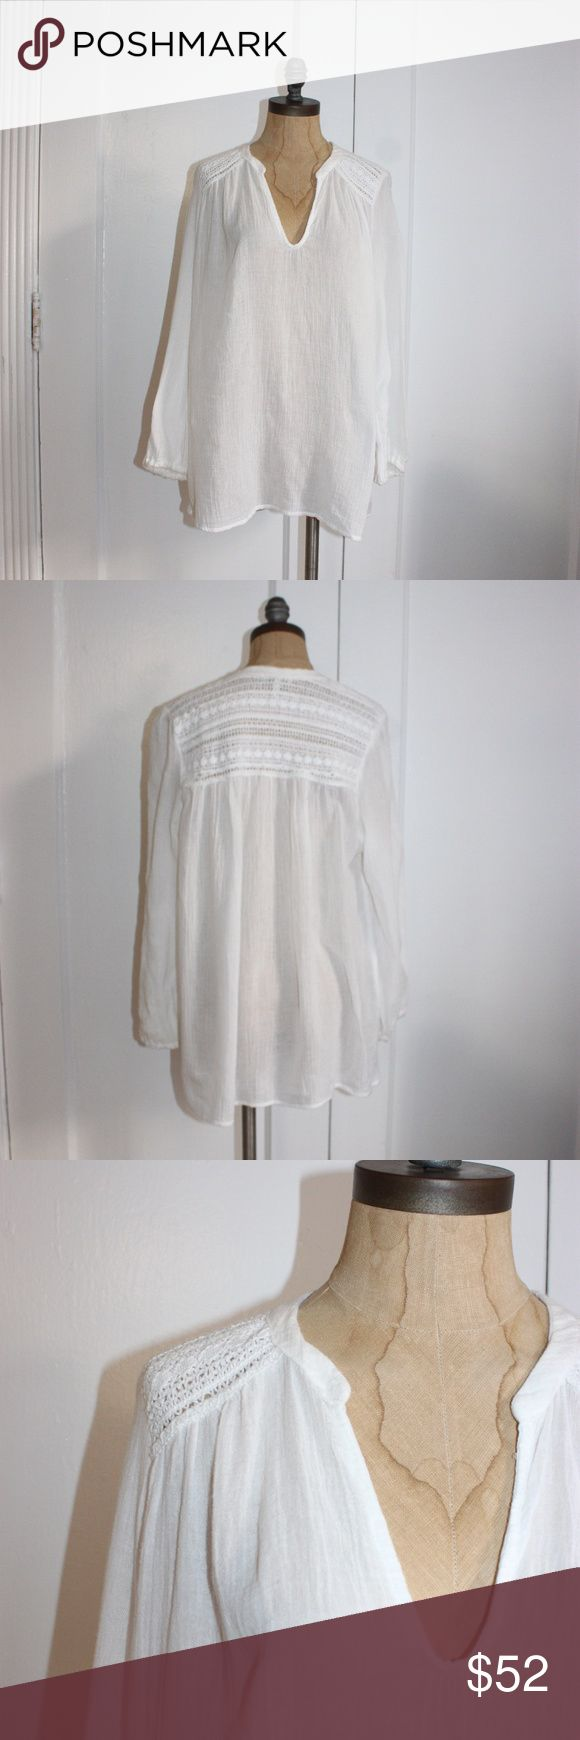 JOIE LONG SLEEVE PEASANT BLOUSE JOIE LONG SLEEVE PEASANT BLOUSE IN EXCELLENT CONDITIONS SEMI SHEER LIGHT COTTON SMALL RELAXED FIT PIT TO PIT 19'' LENGTH 26'' 100%COTTON TP-602 Joie Tops Blouses